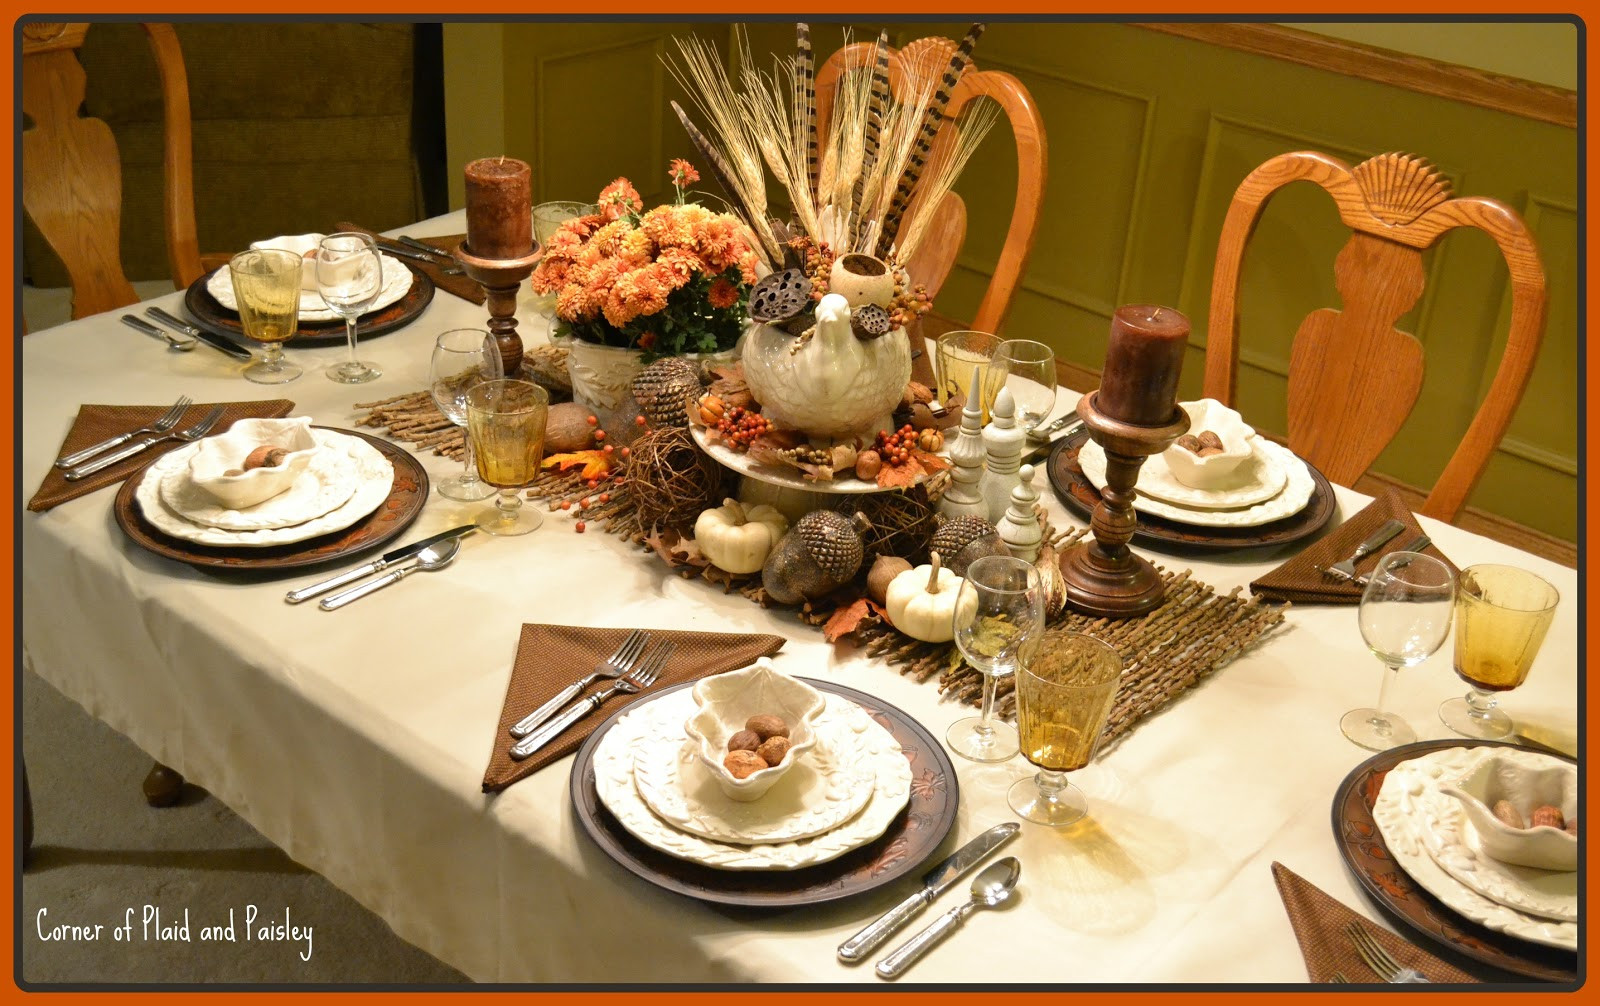 Thanksgiving Dinner Table  Corner of Plaid and Paisley Thanksgiving Table Not the